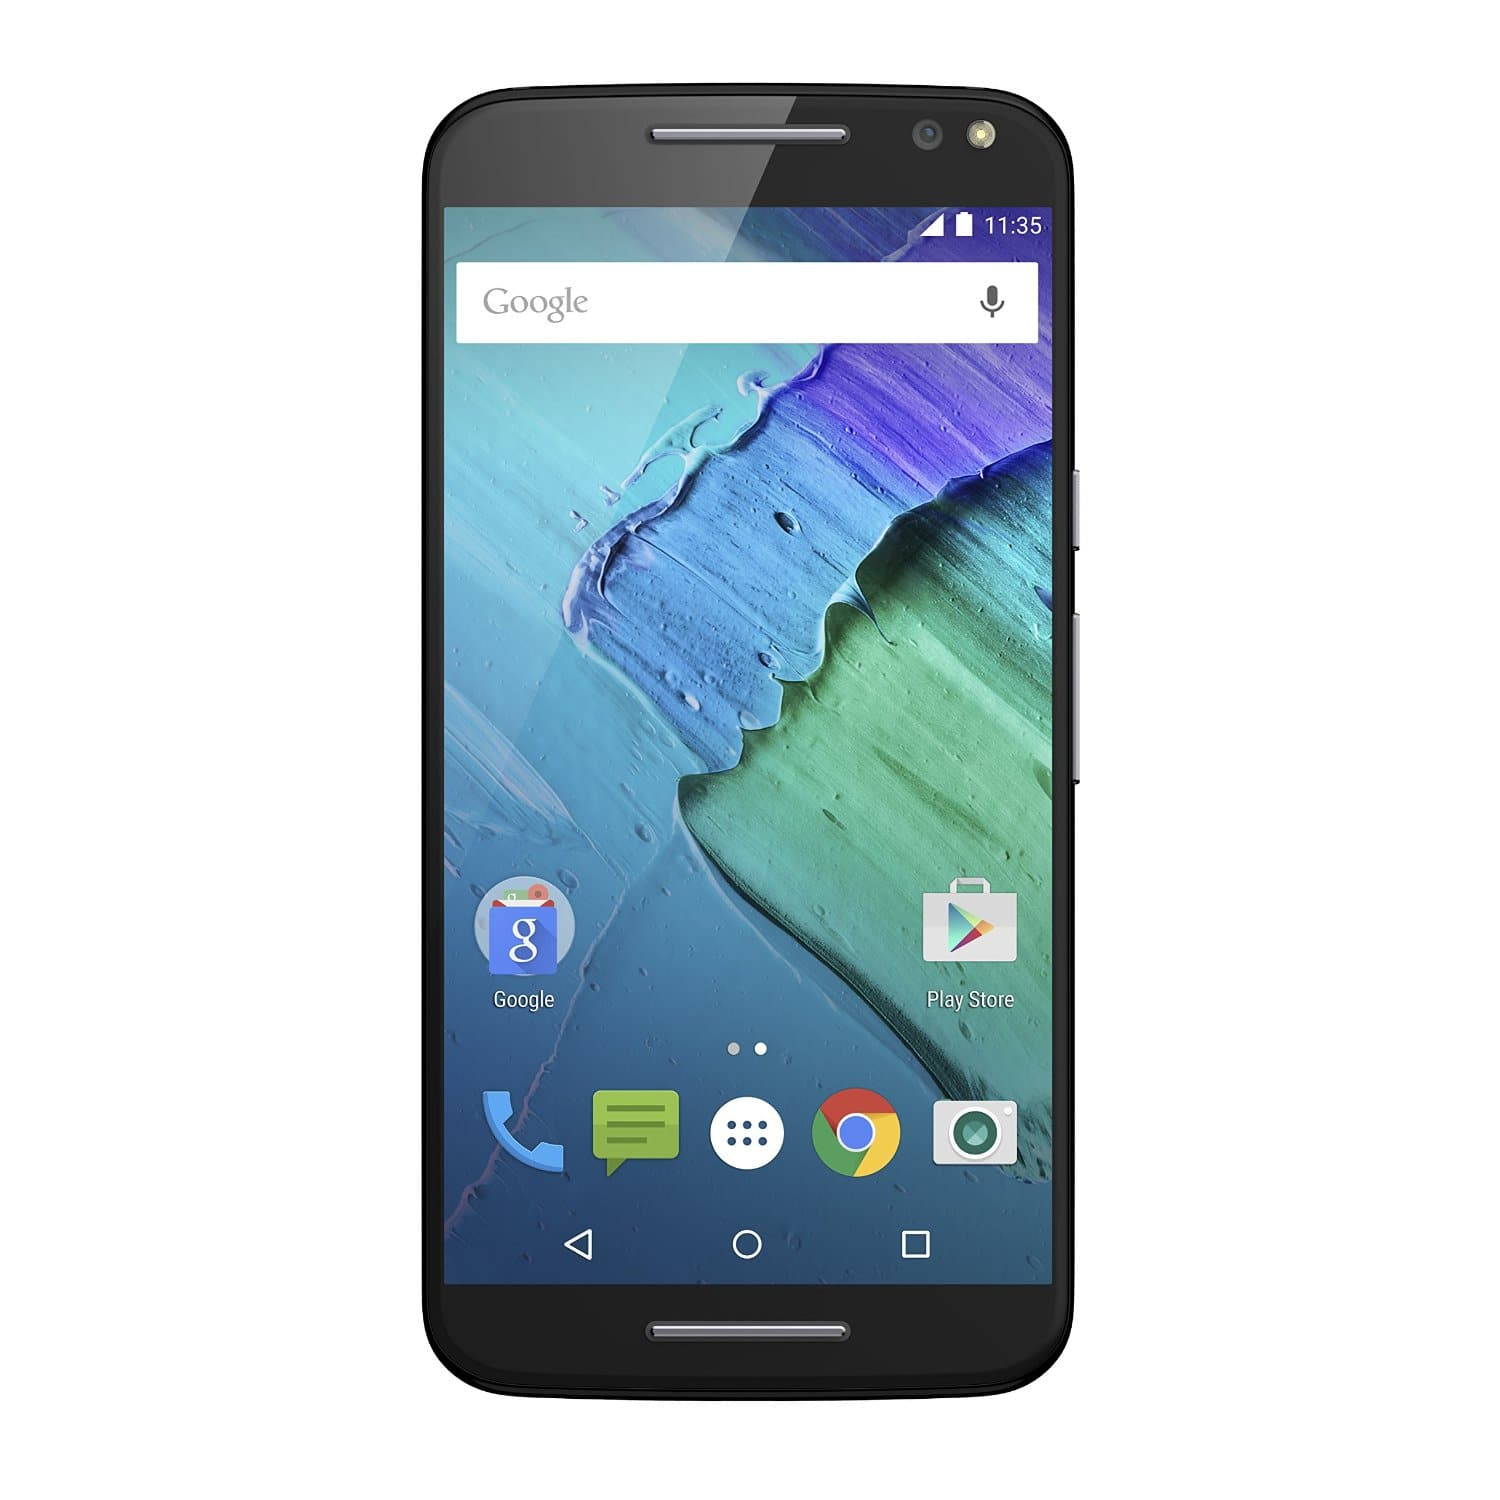 16GB Motorola Moto X Pure Edition Unlocked Smartphone (Used, Very Good)  $284 + Free Shipping